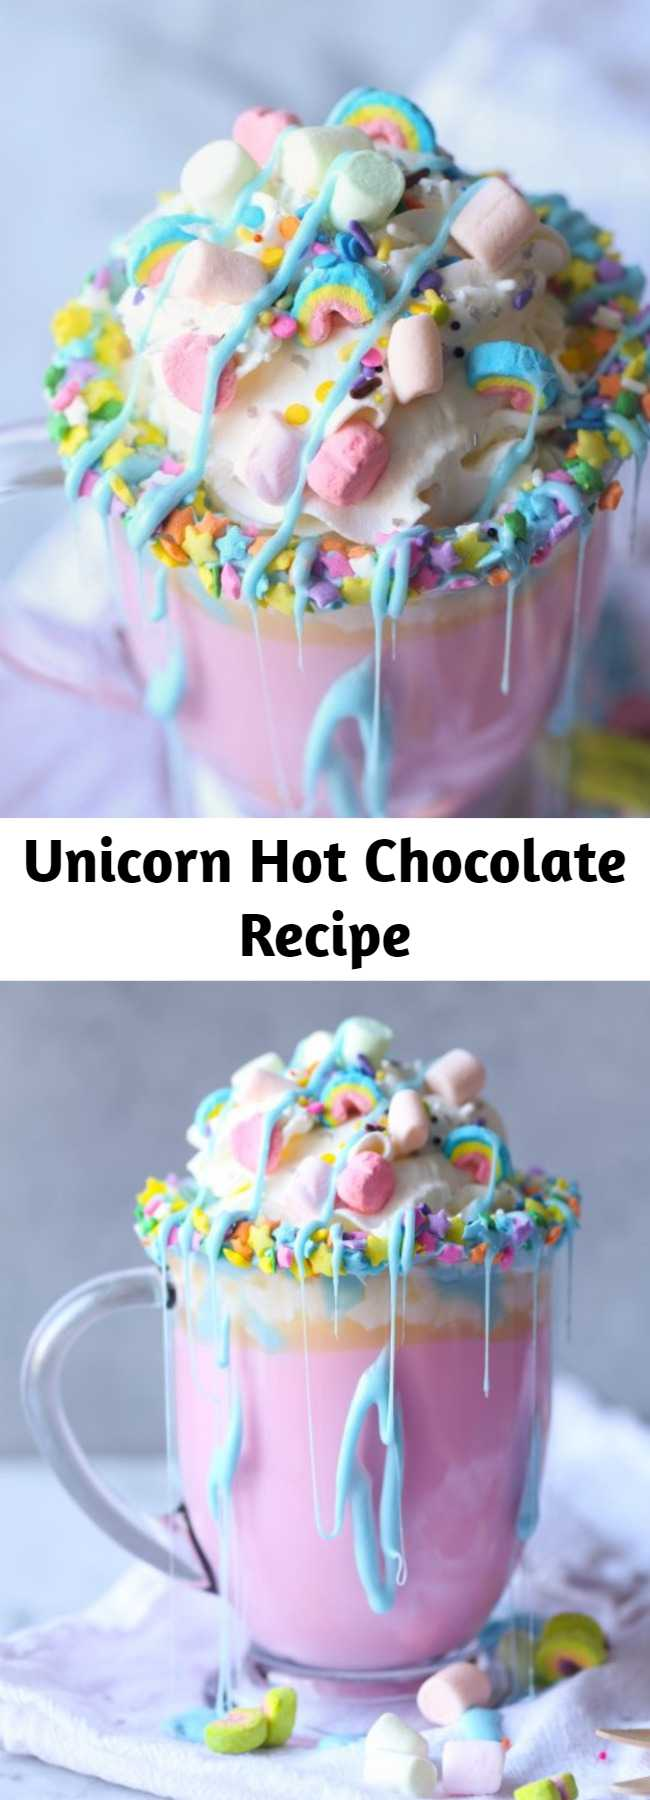 Unicorn Hot Chocolate Recipe - A magical pastel rainbow of color, fluffy mini marshmallows and a warm and creamy white chocolate make this Unicorn Hot Chocolate the stuff of little girls' dreams.